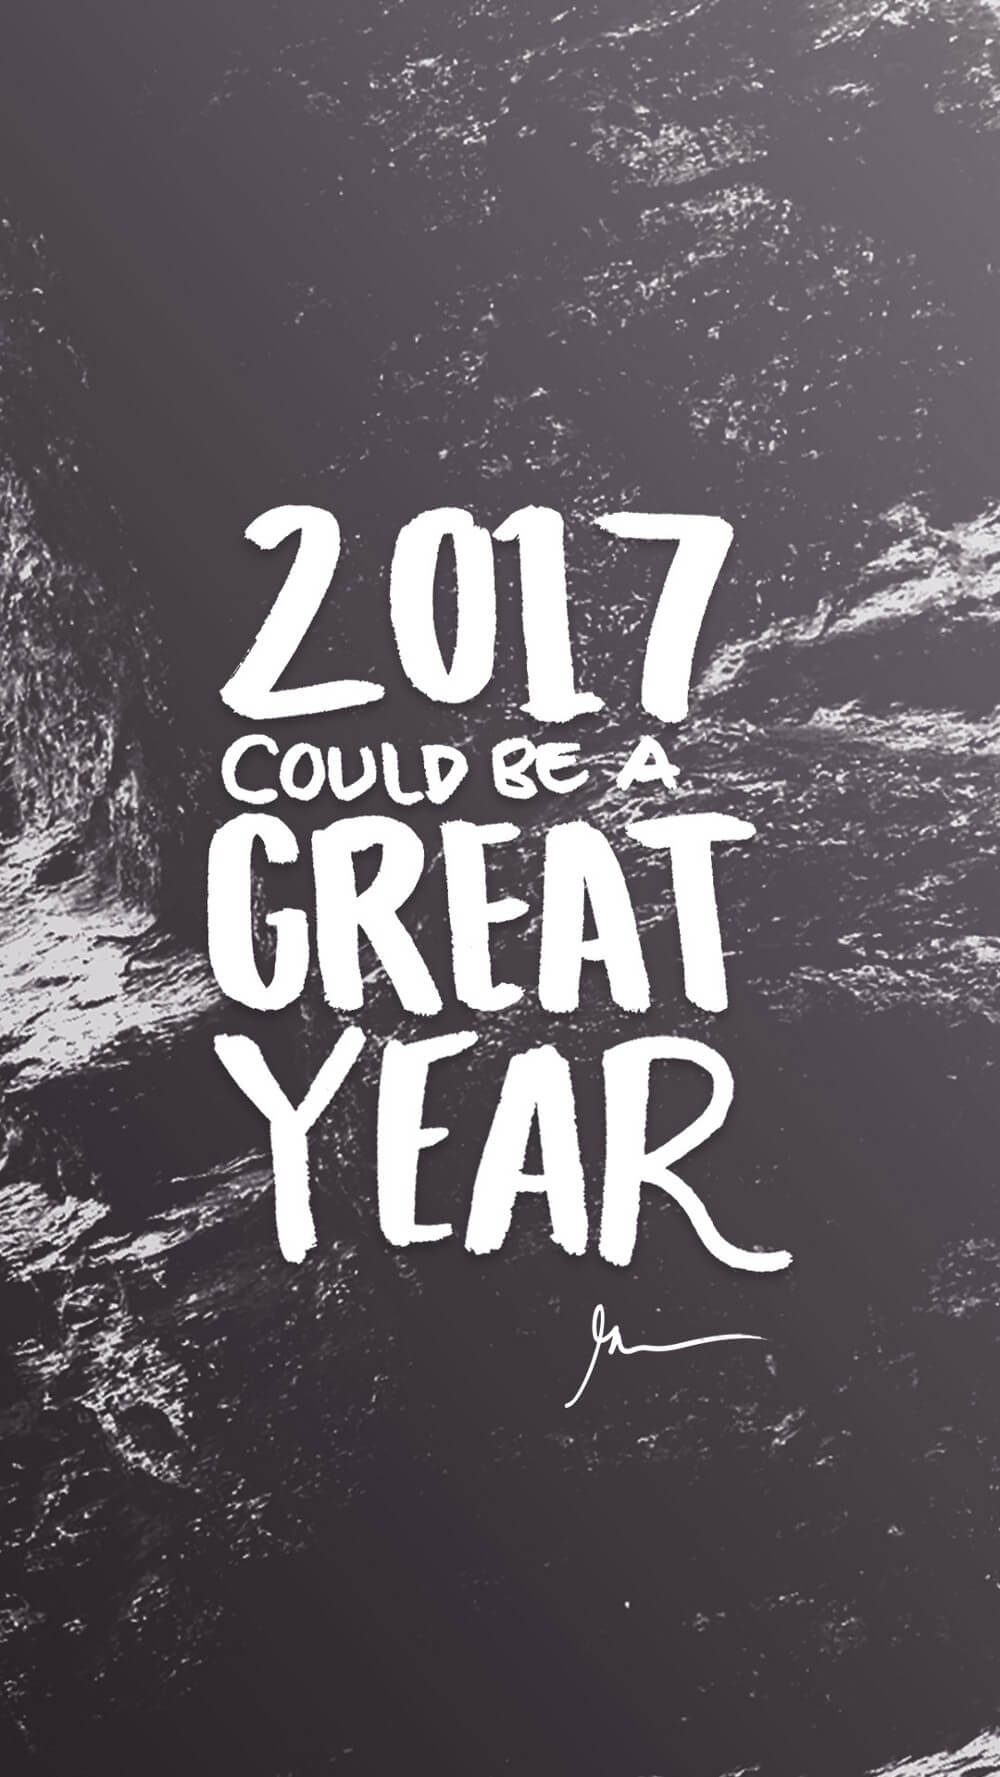 2017 Could Be A Great Year